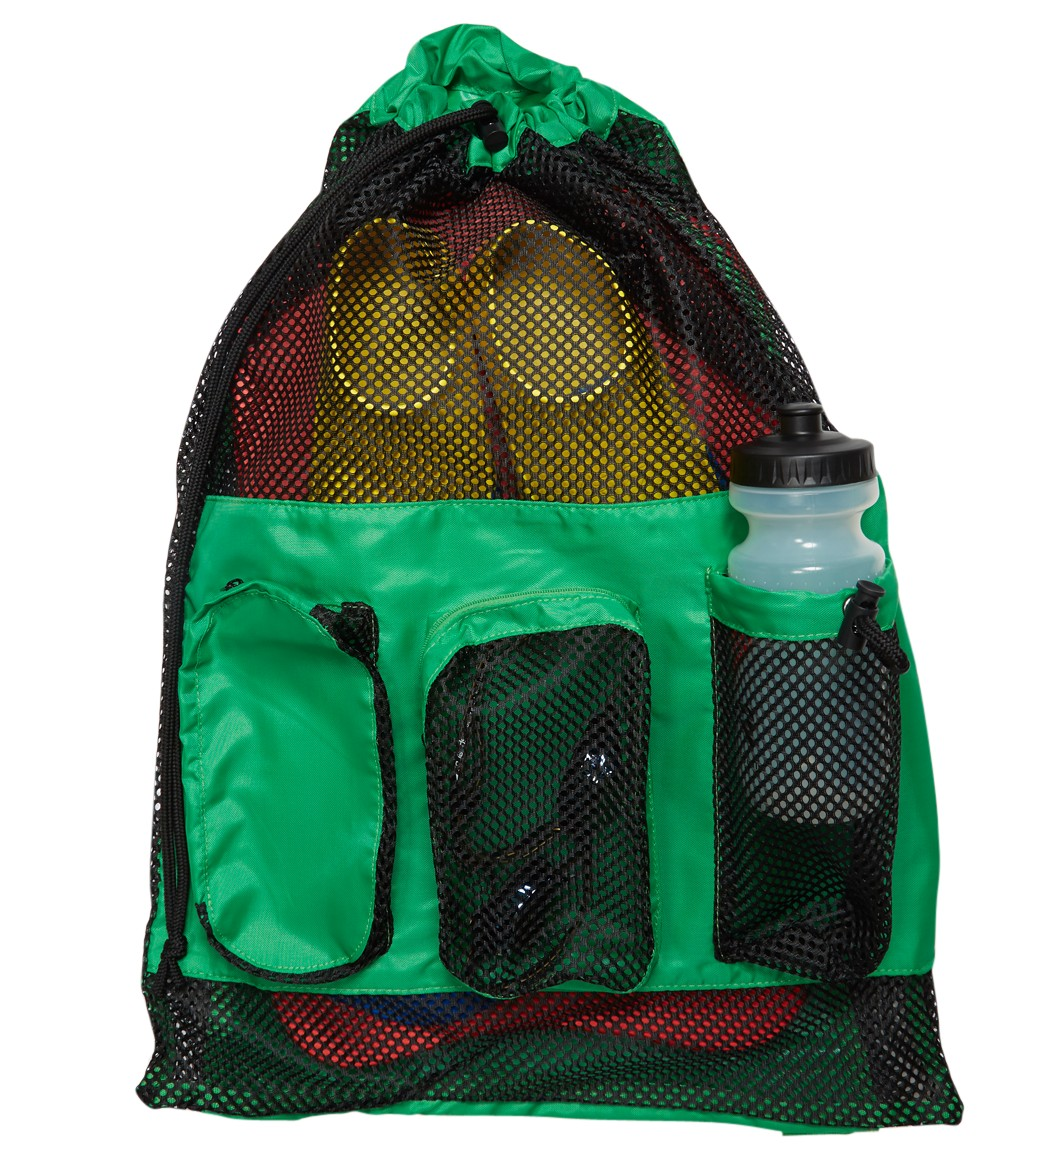 Sporti Equipment Mesh Bag at SwimOutlet.com